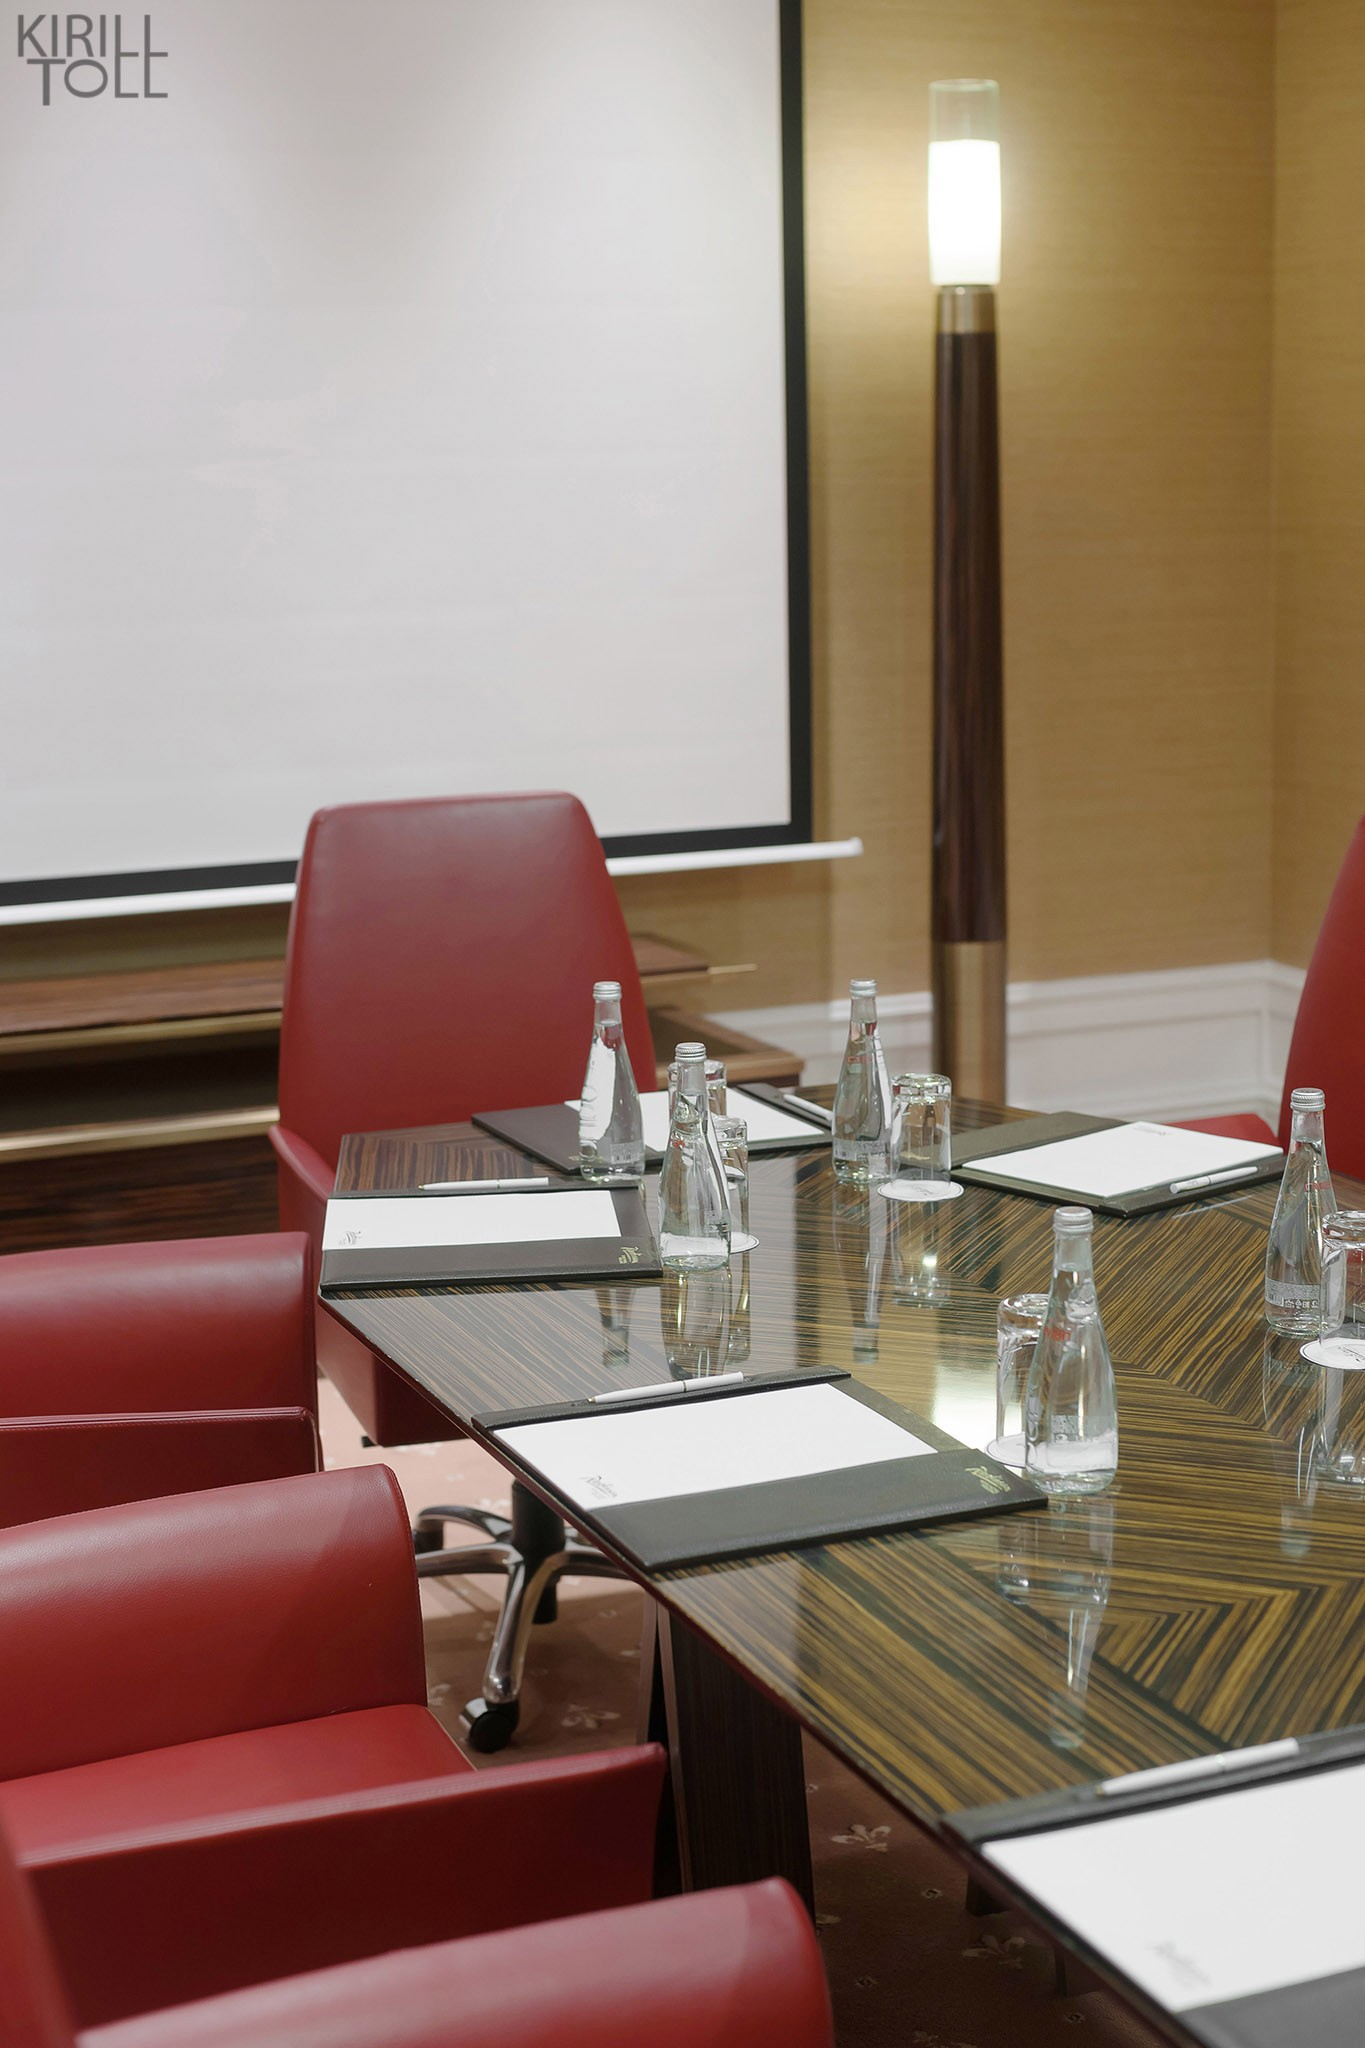 The interior of the meeting room. Photographer Kirill Toll. Moscow